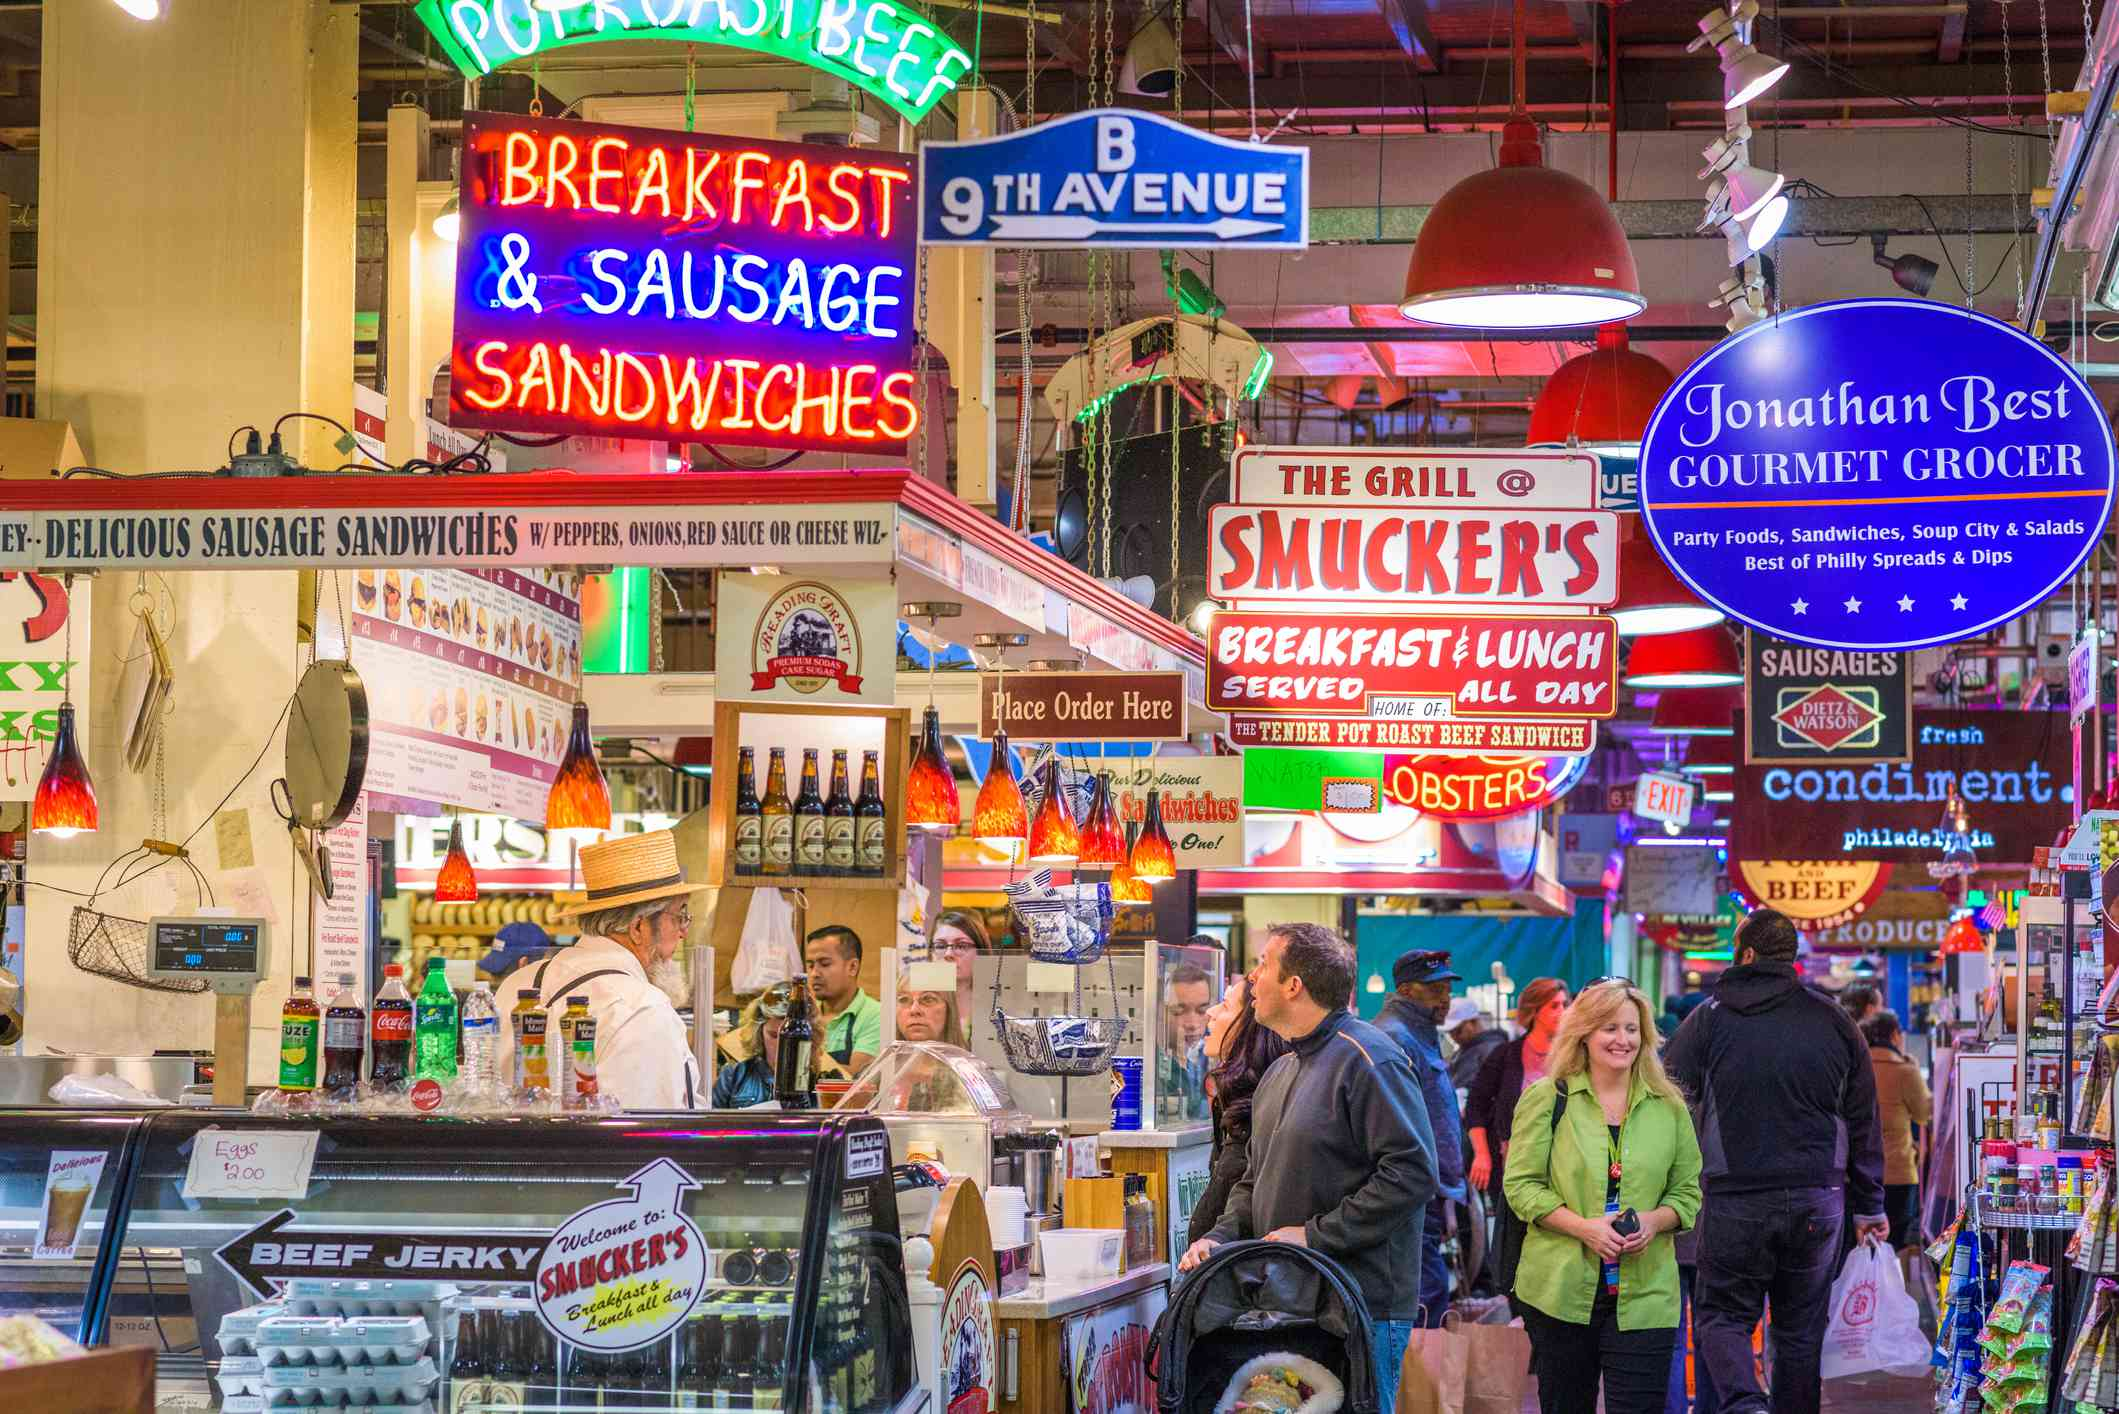 Vendors and customers in Reading Terminal Market